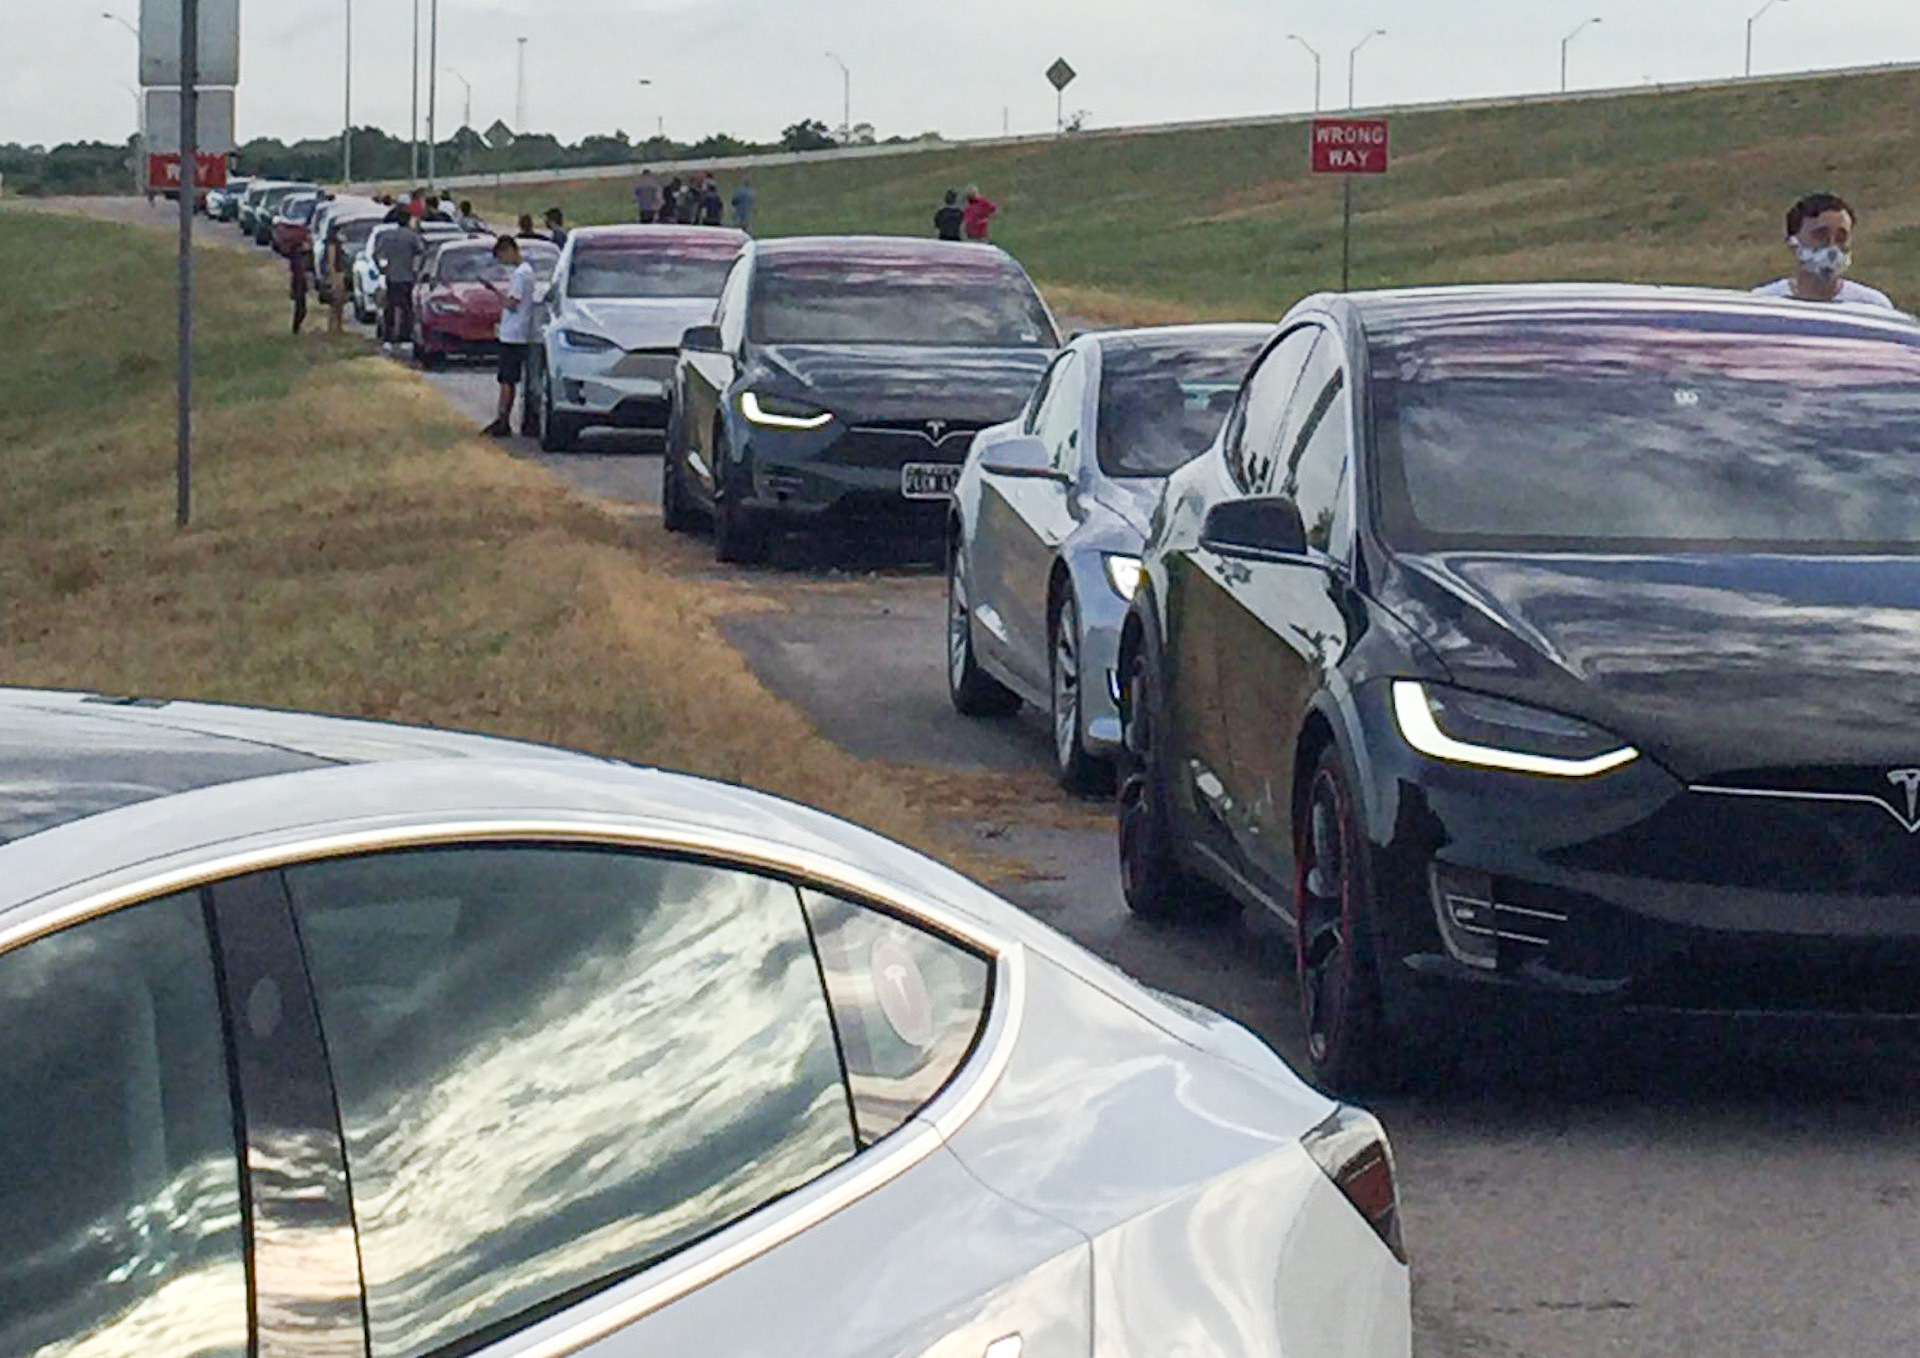 Tesla owners celebrate Texas victory with parade to Gigafactory site